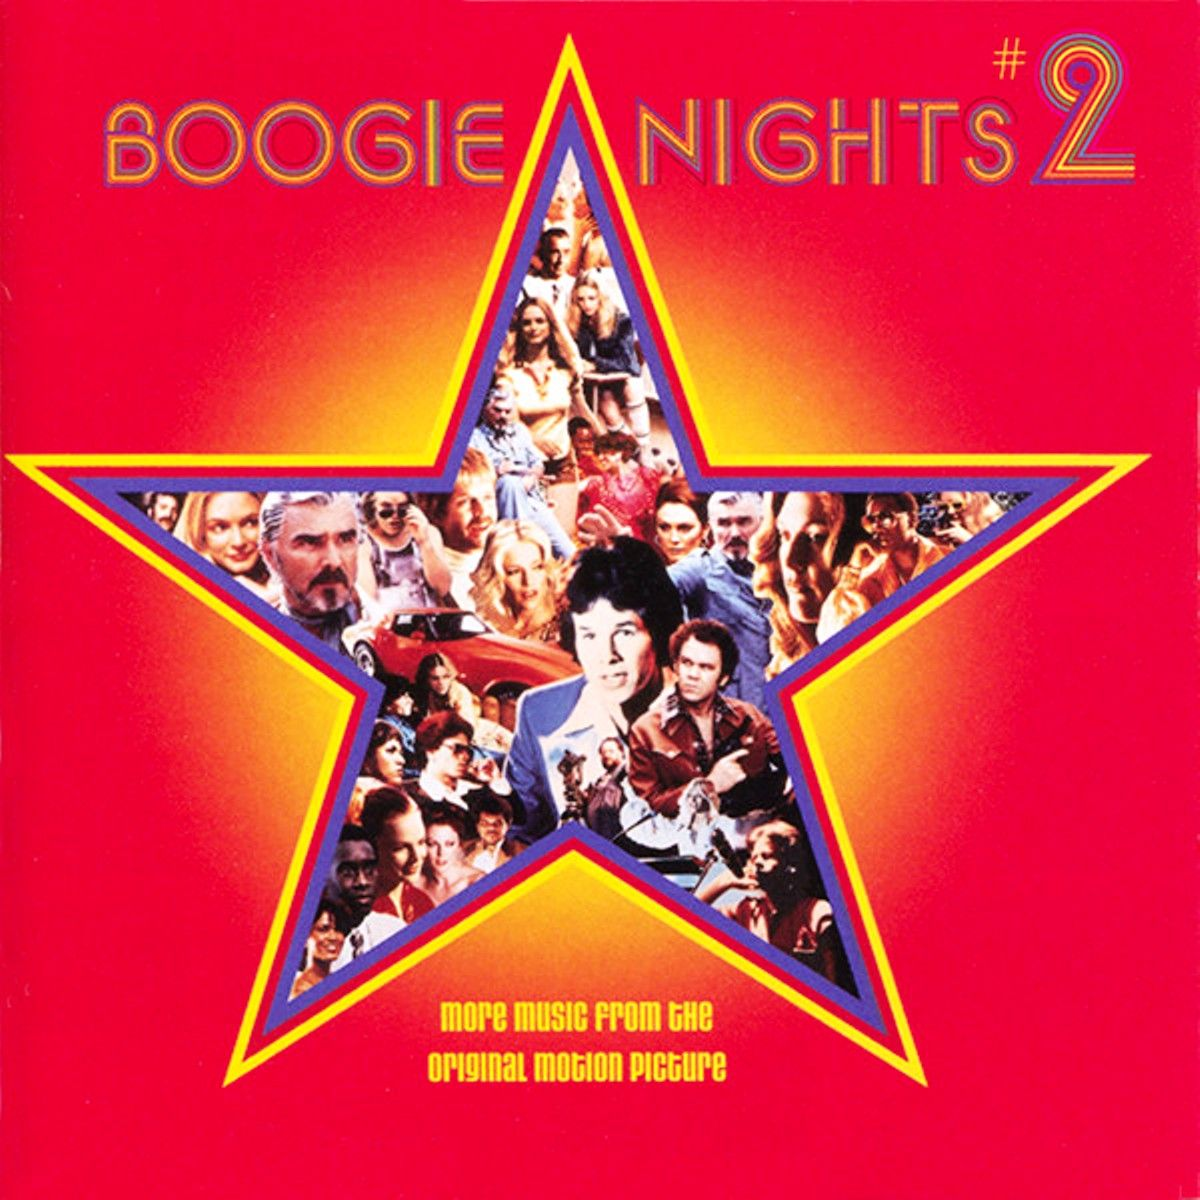 Boogie Nights 2 Movie Soundtrack 1998 Boogie Nights Saturday Night Fever Soundtrack